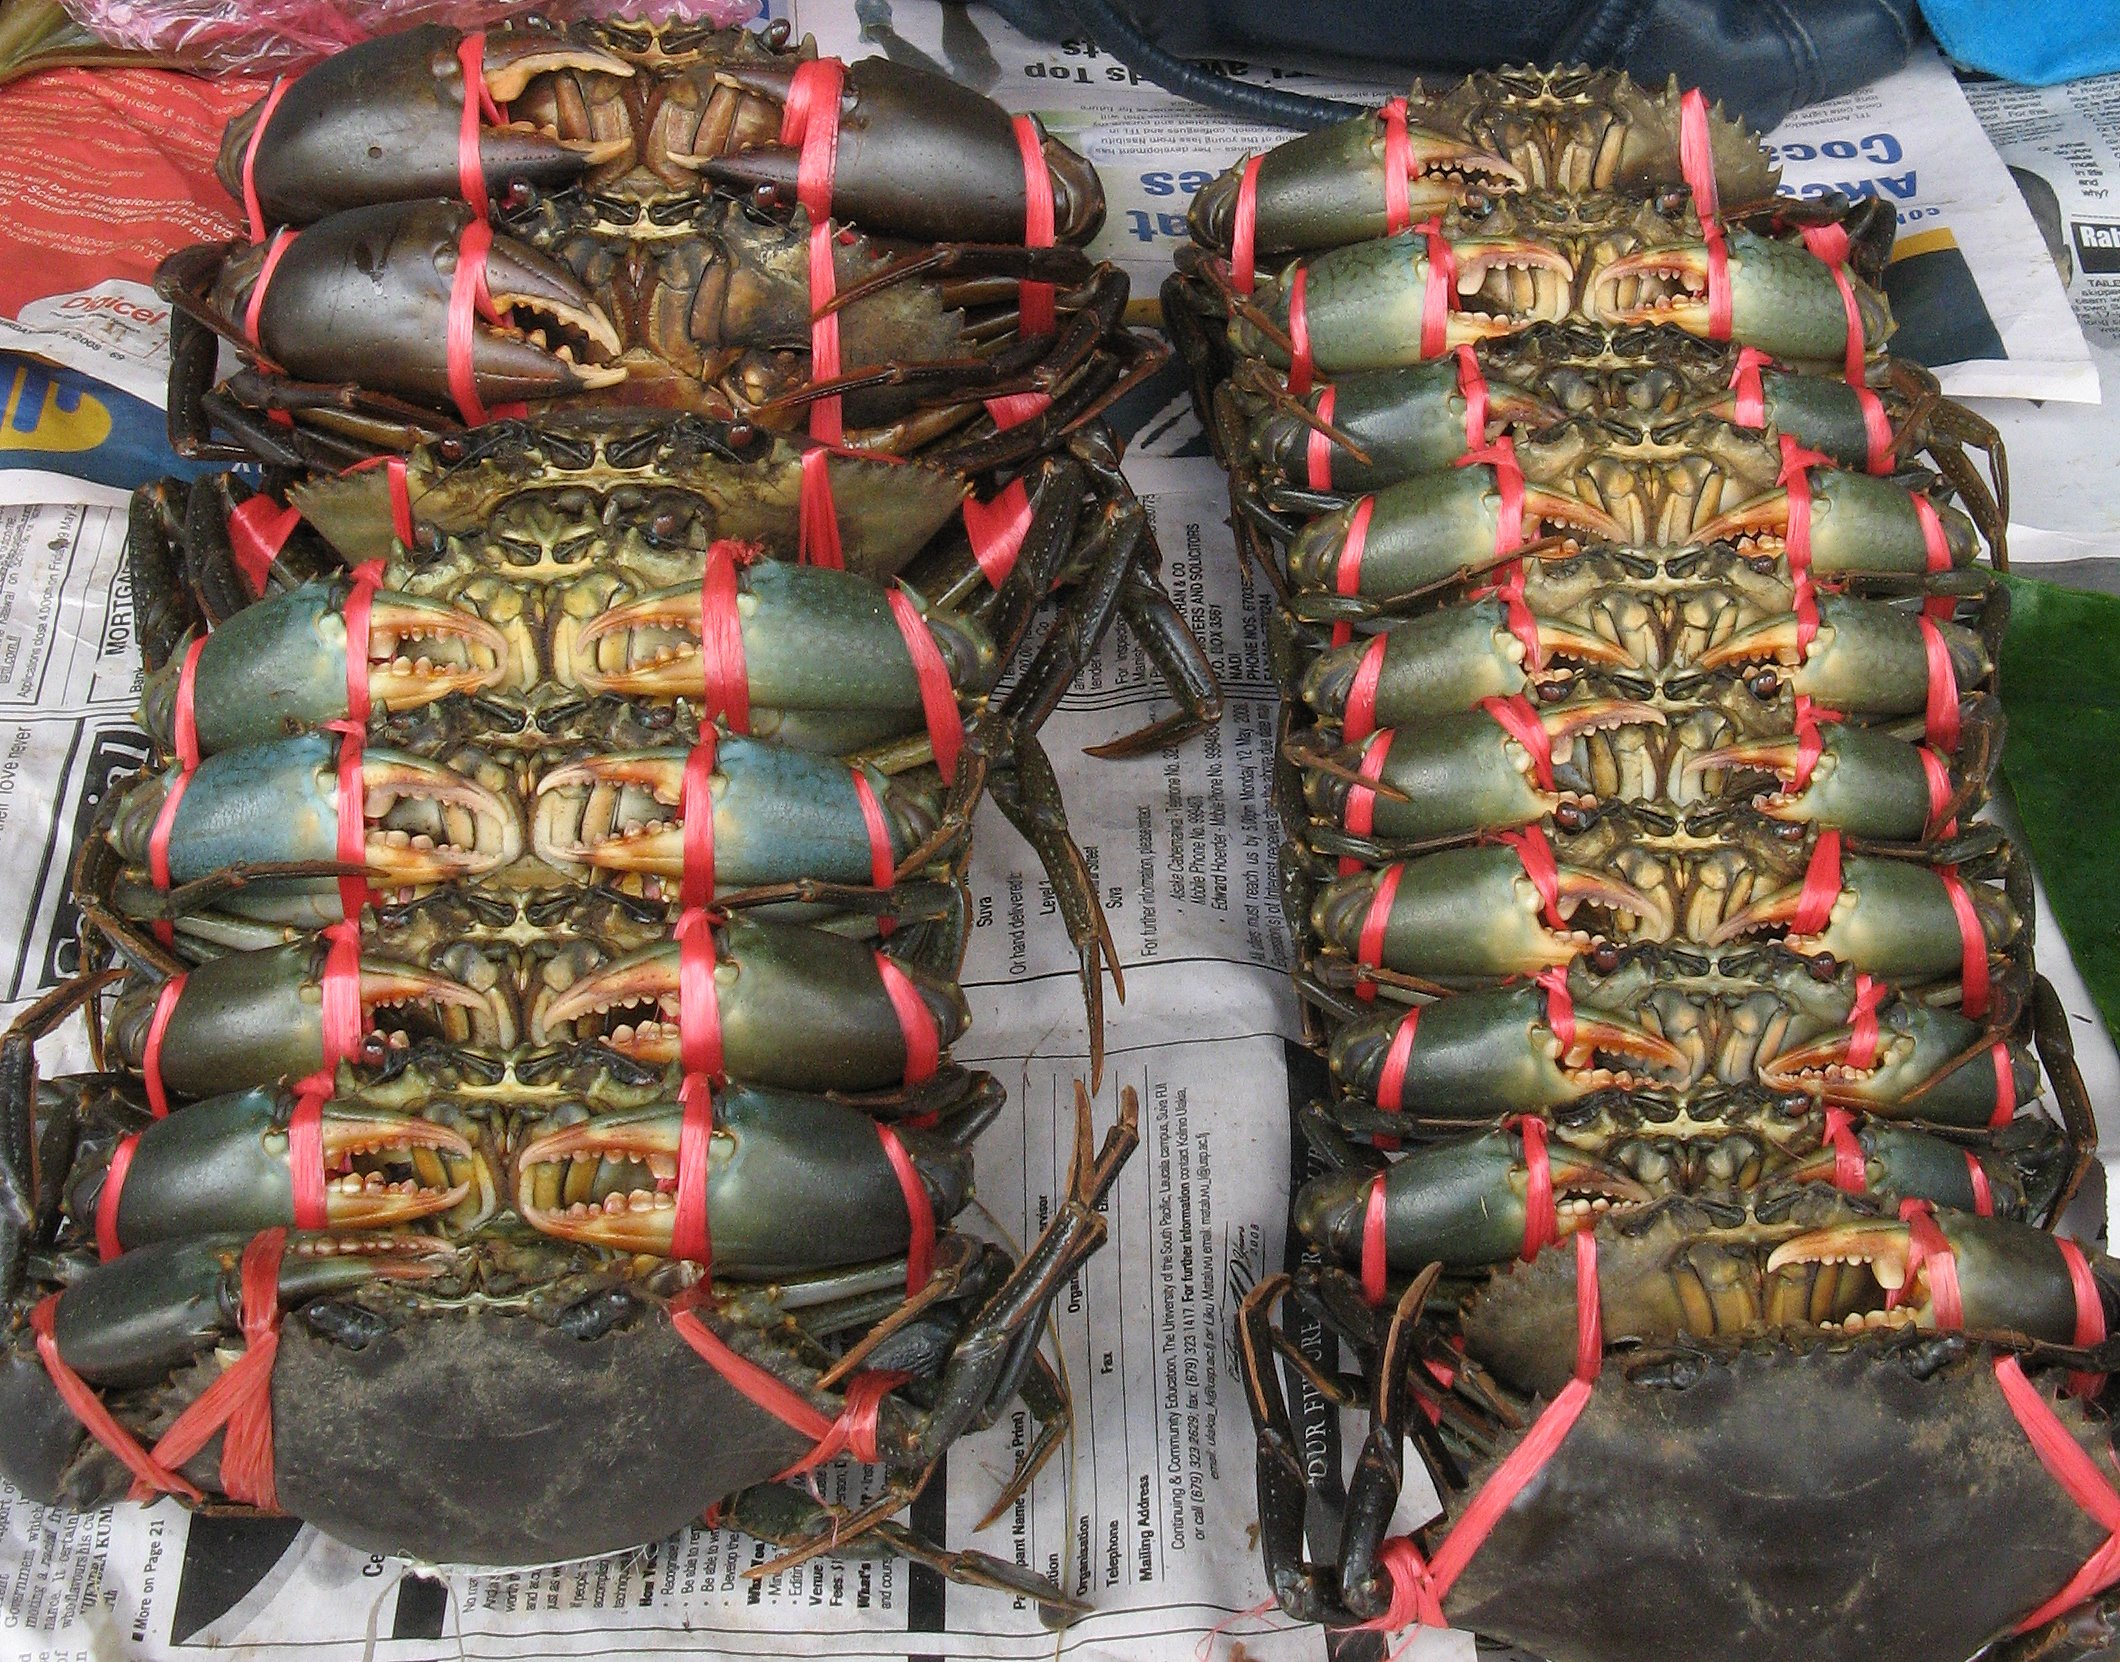 Mud crabs (Scylla sp.) on sale in Suva market